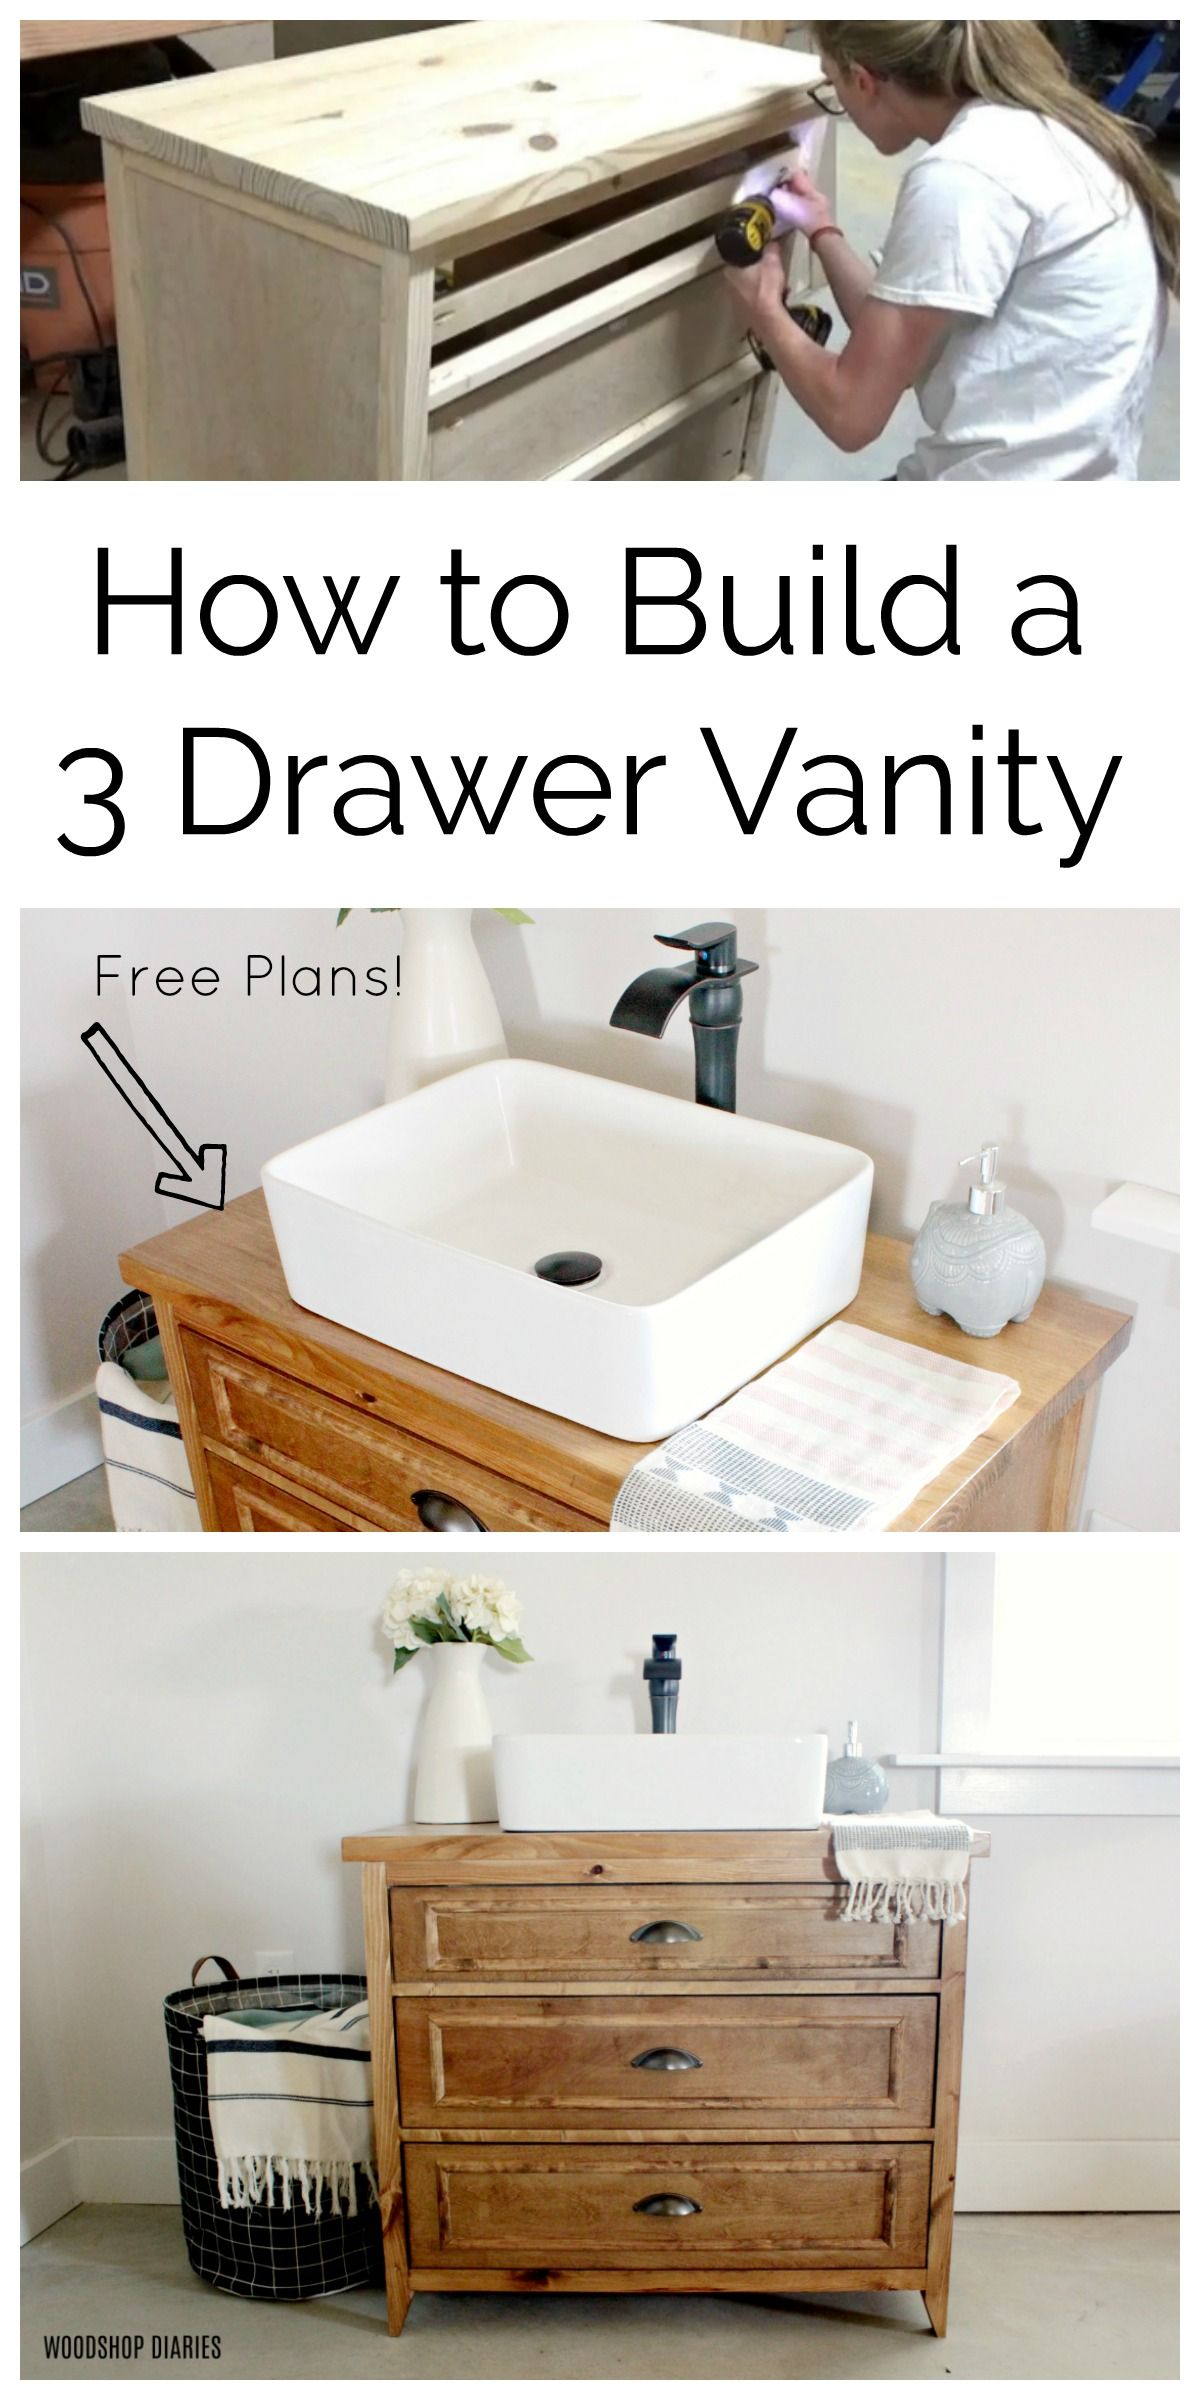 How To Build A Diy Vanity With Drawers Free Plans And Video In